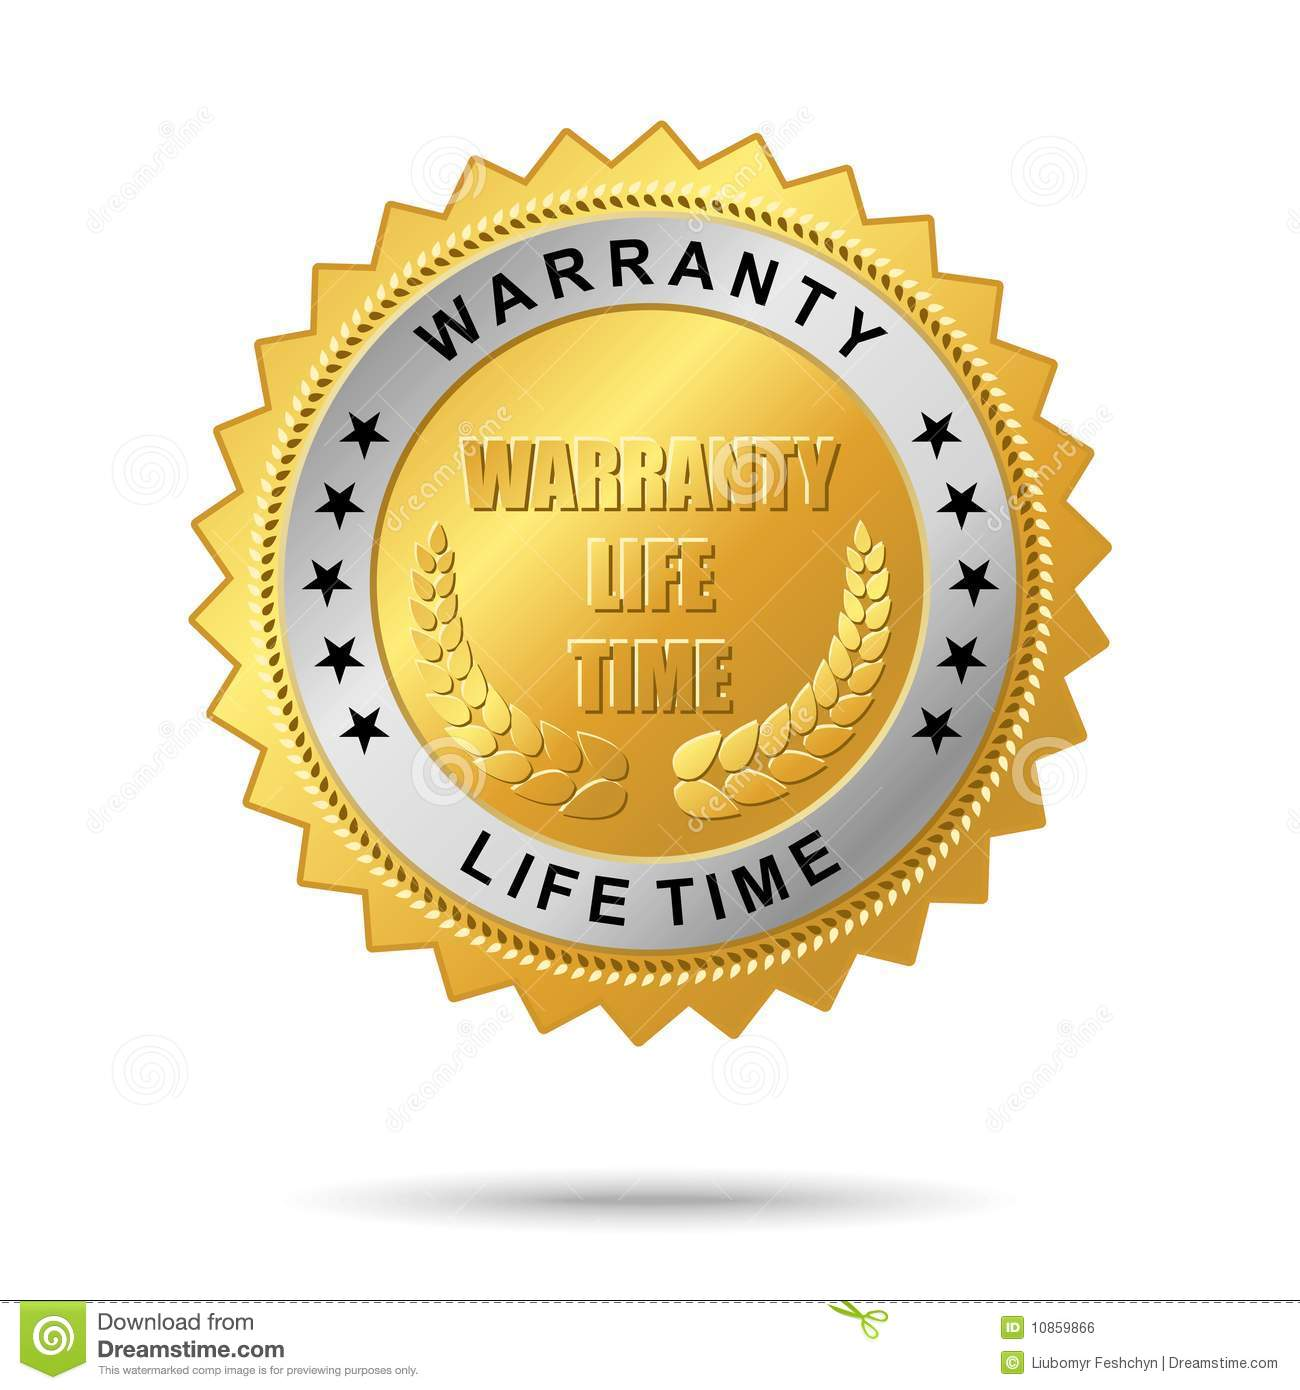 Royalty Free Stock Image: Warranty life time golden label